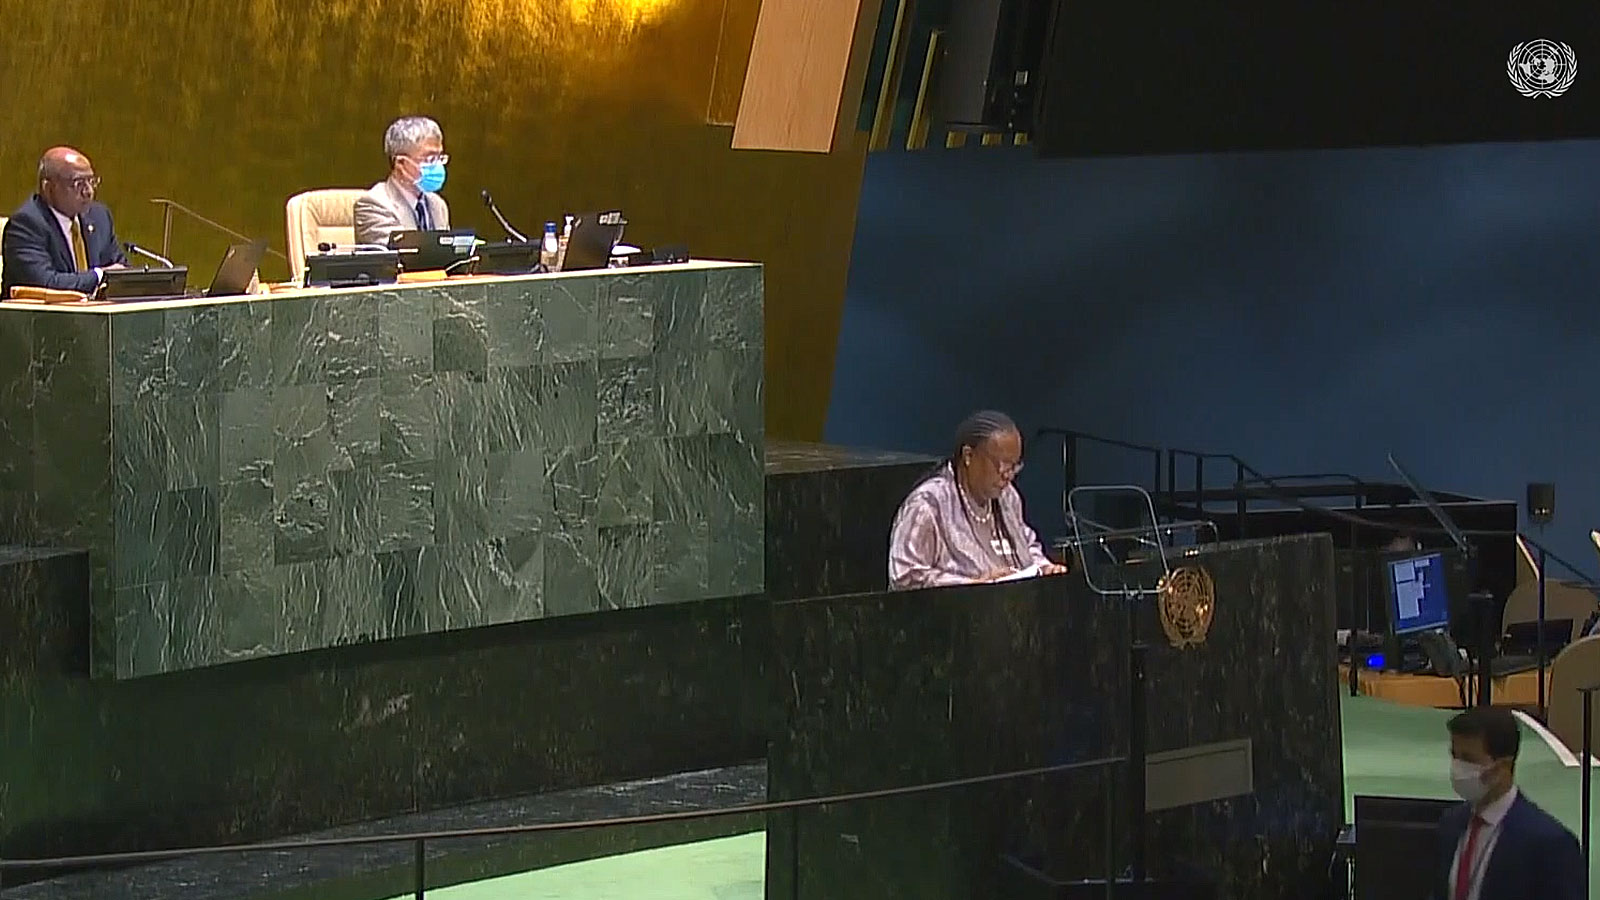 UN General Assembly: Reparations, racial justice and equality for people of African descent